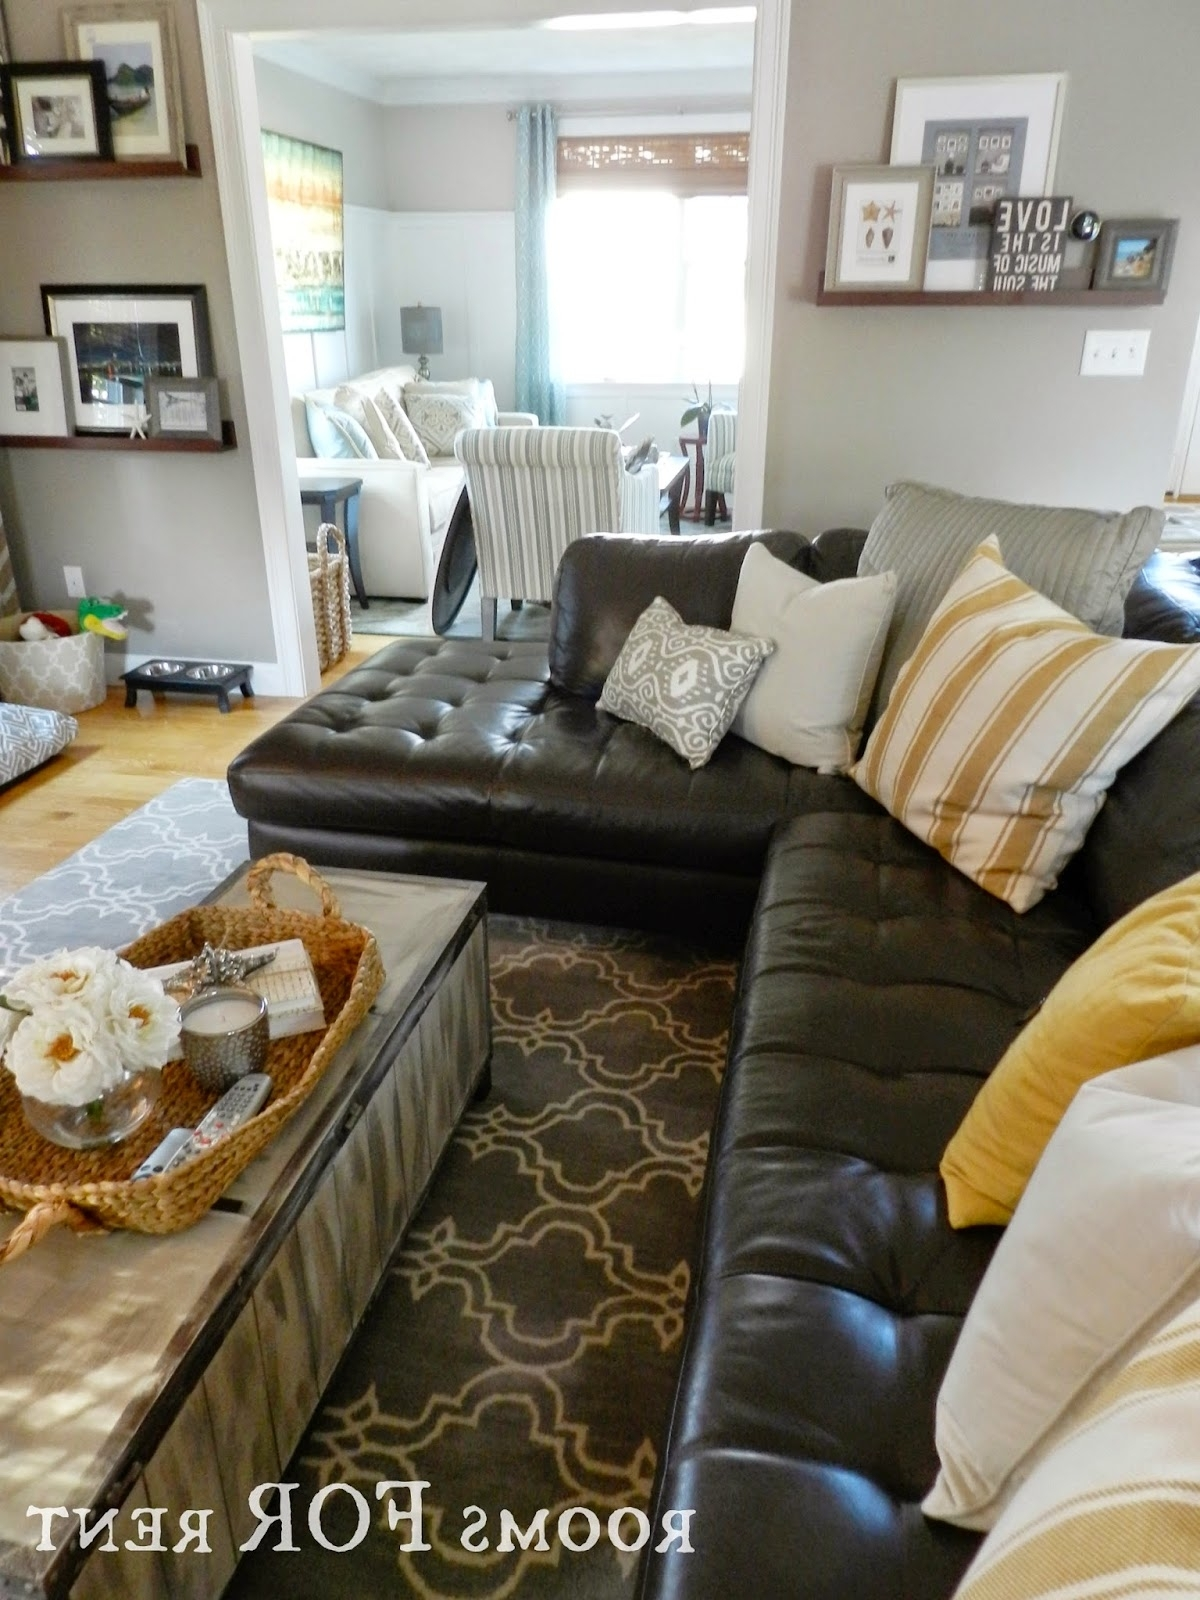 How To Style A Dark Leather Sofa (Den Makeover) Beneath My 30+ Living Room Decorating Black Leather Couch Inspirations